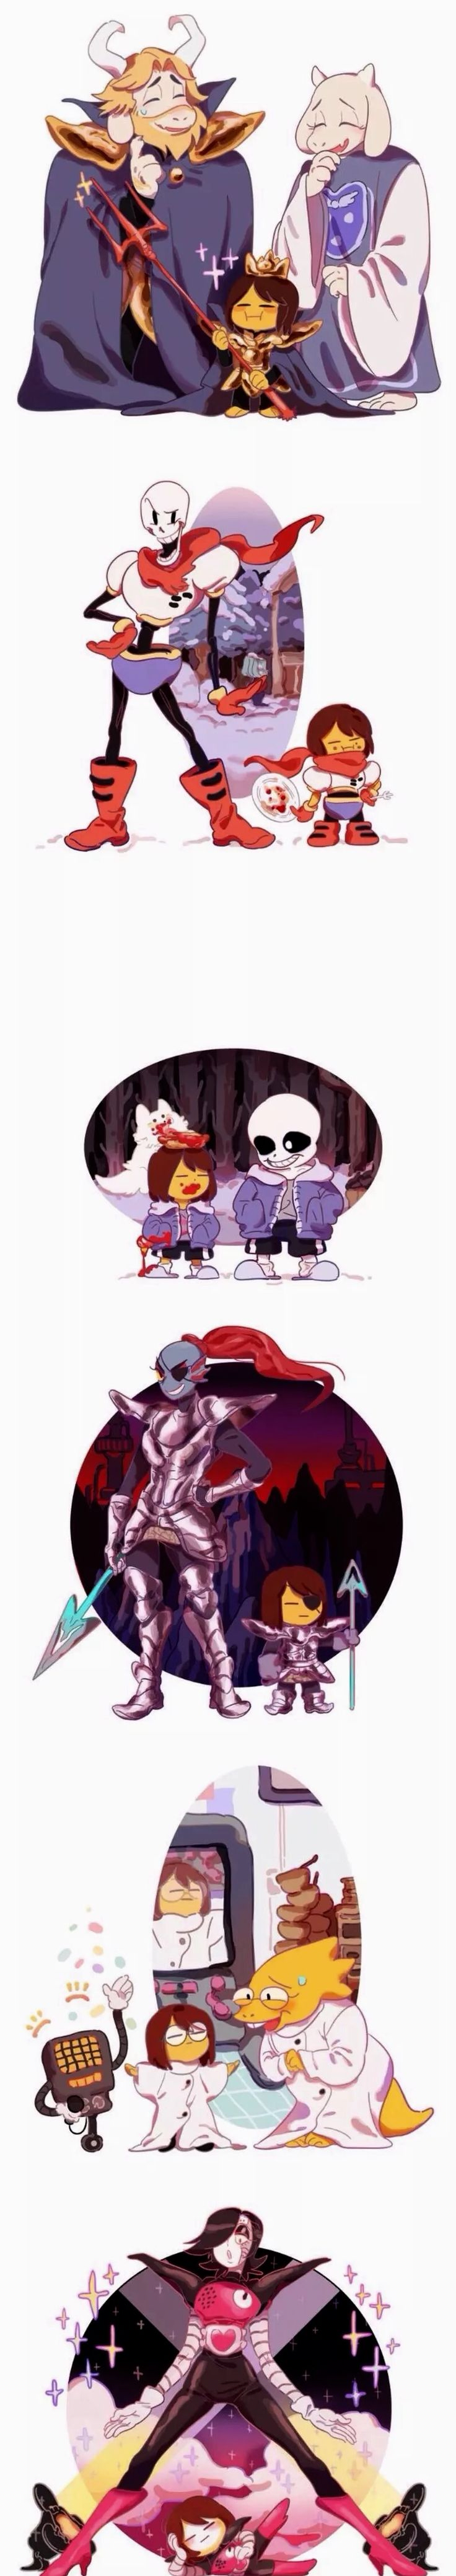 Frisk wearing the outfits and costumes of Asgore/Toriel, Papyrus, Sans, Undyne, Alphys, and Mettaton